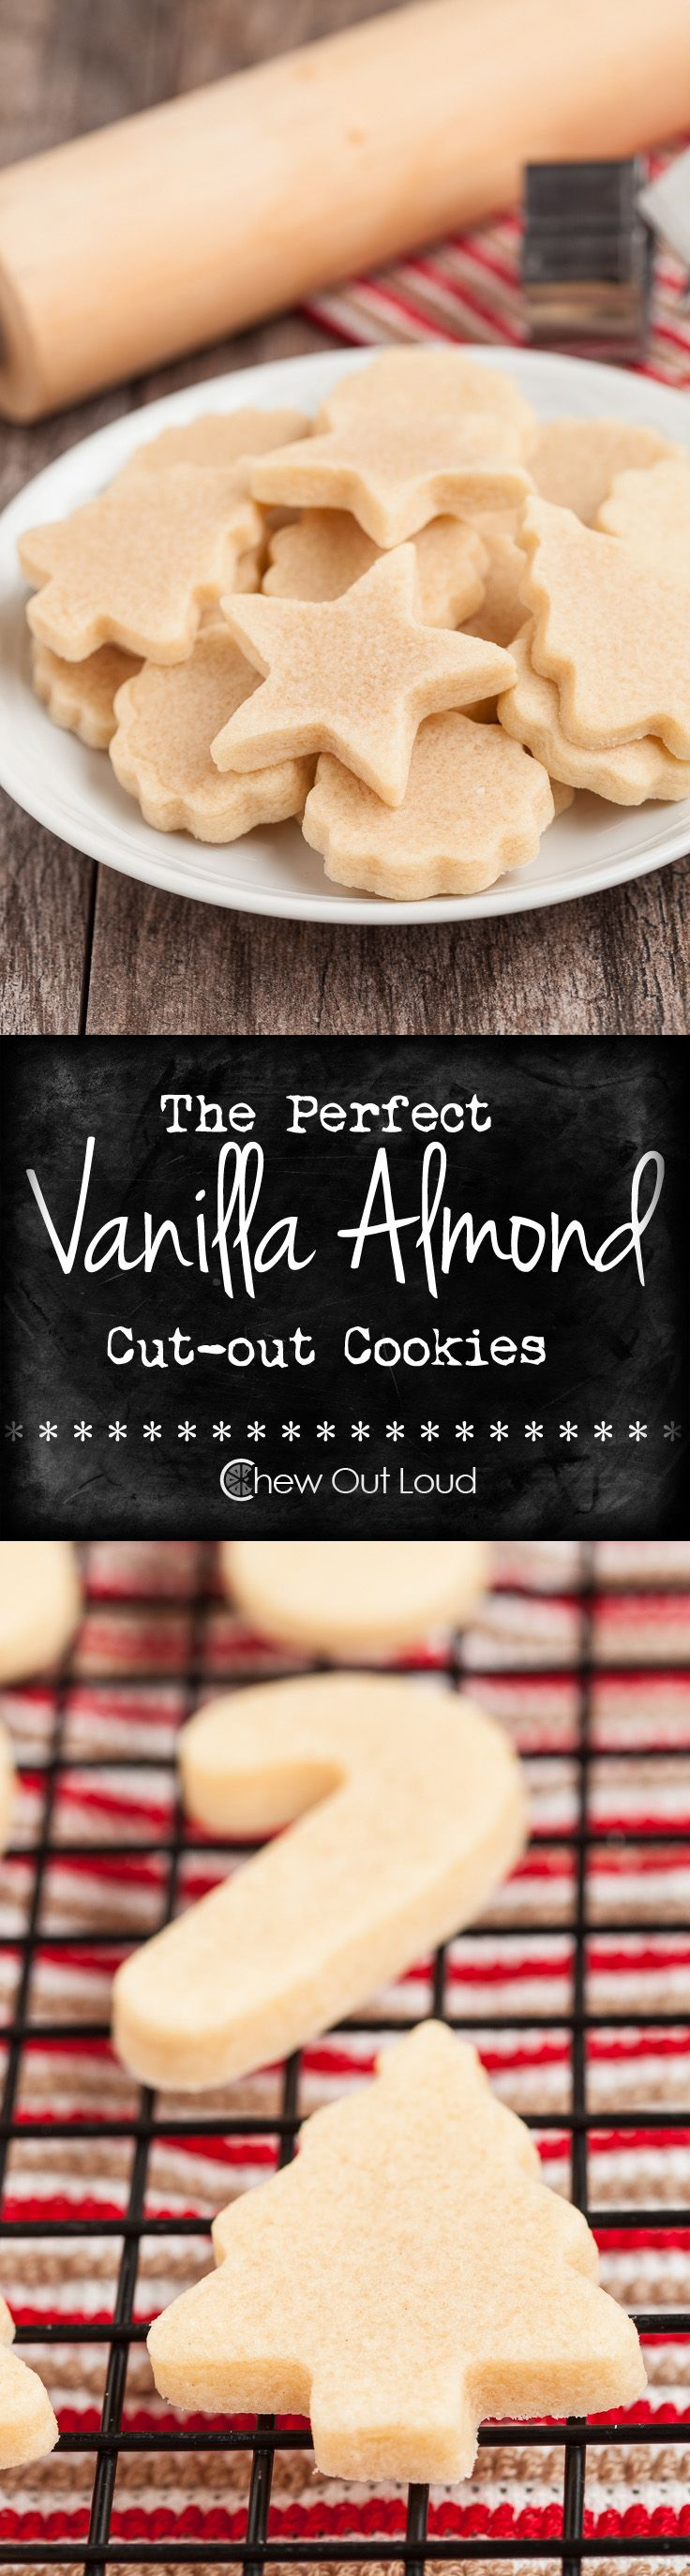 Perfect Vanilla Almond Cut-out Cookies ~ Easy and fuss free. Buttery, tender cut-out cookies that keep their shape well... Perfect for decorating